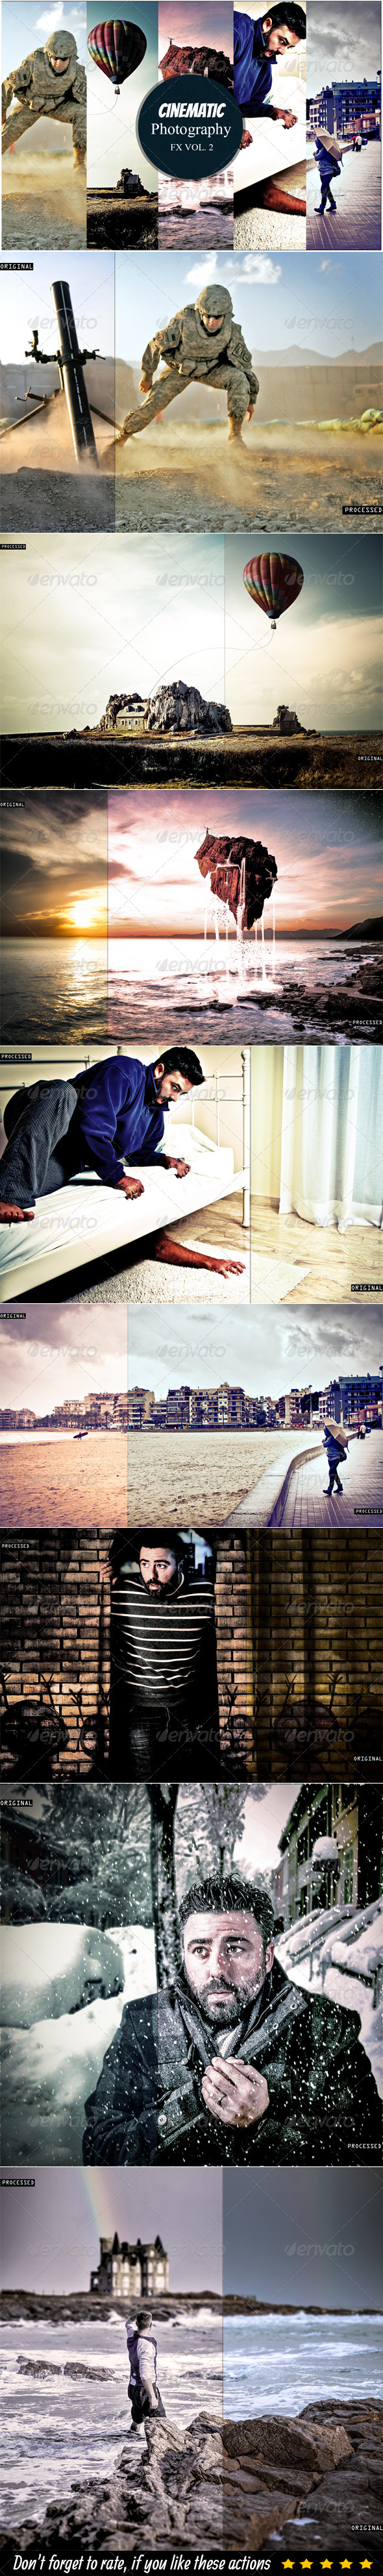 GraphicRiver Cinematic Photography Vol 2 6222930